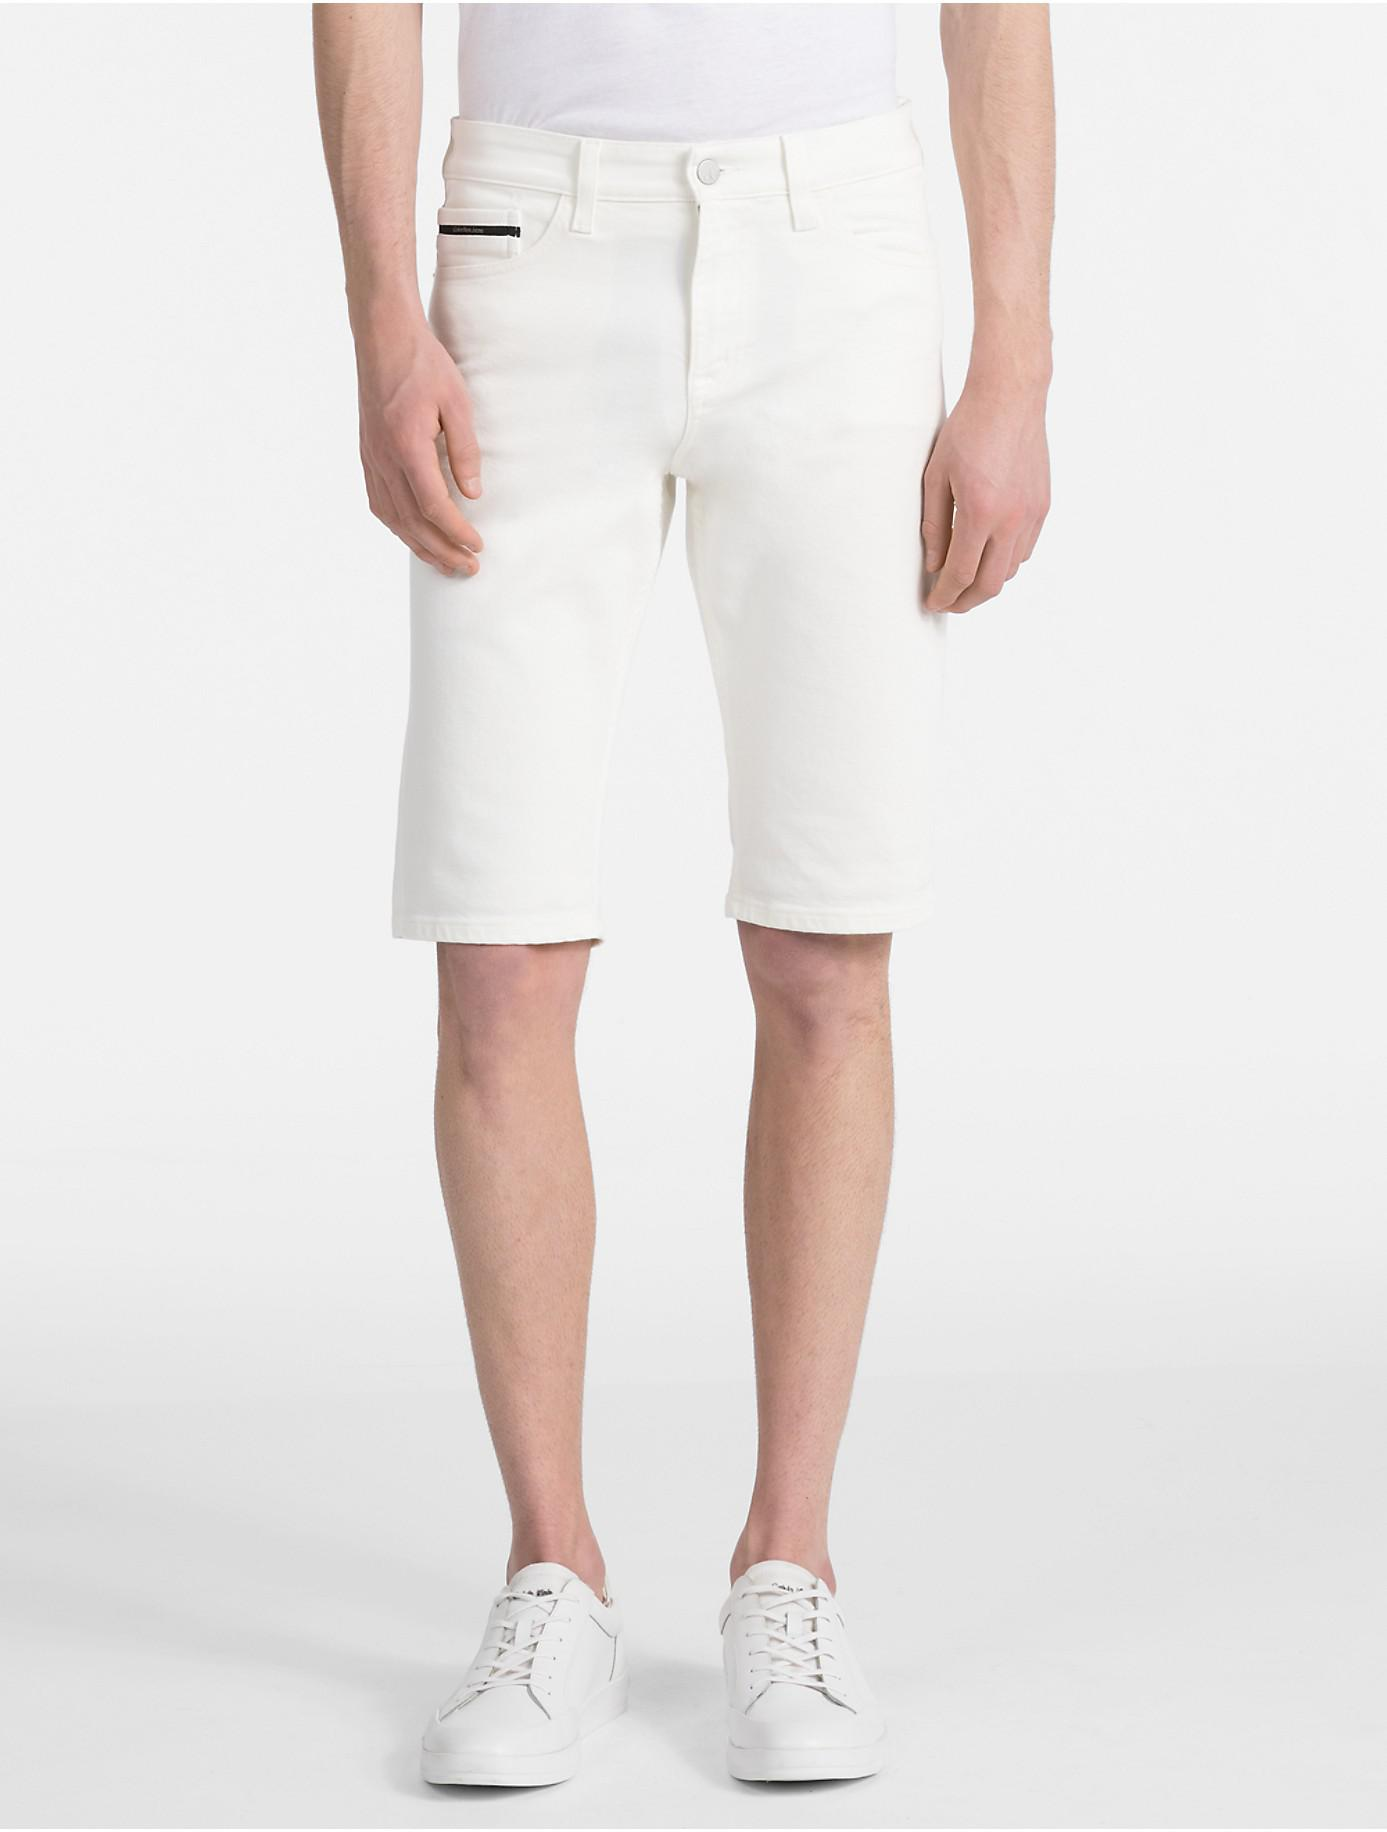 Slim Denim Shorts Calvin Klein Sale Fast Delivery With Paypal Free Shipping Where Can You Find Cheap Comfortable xaK1xRot